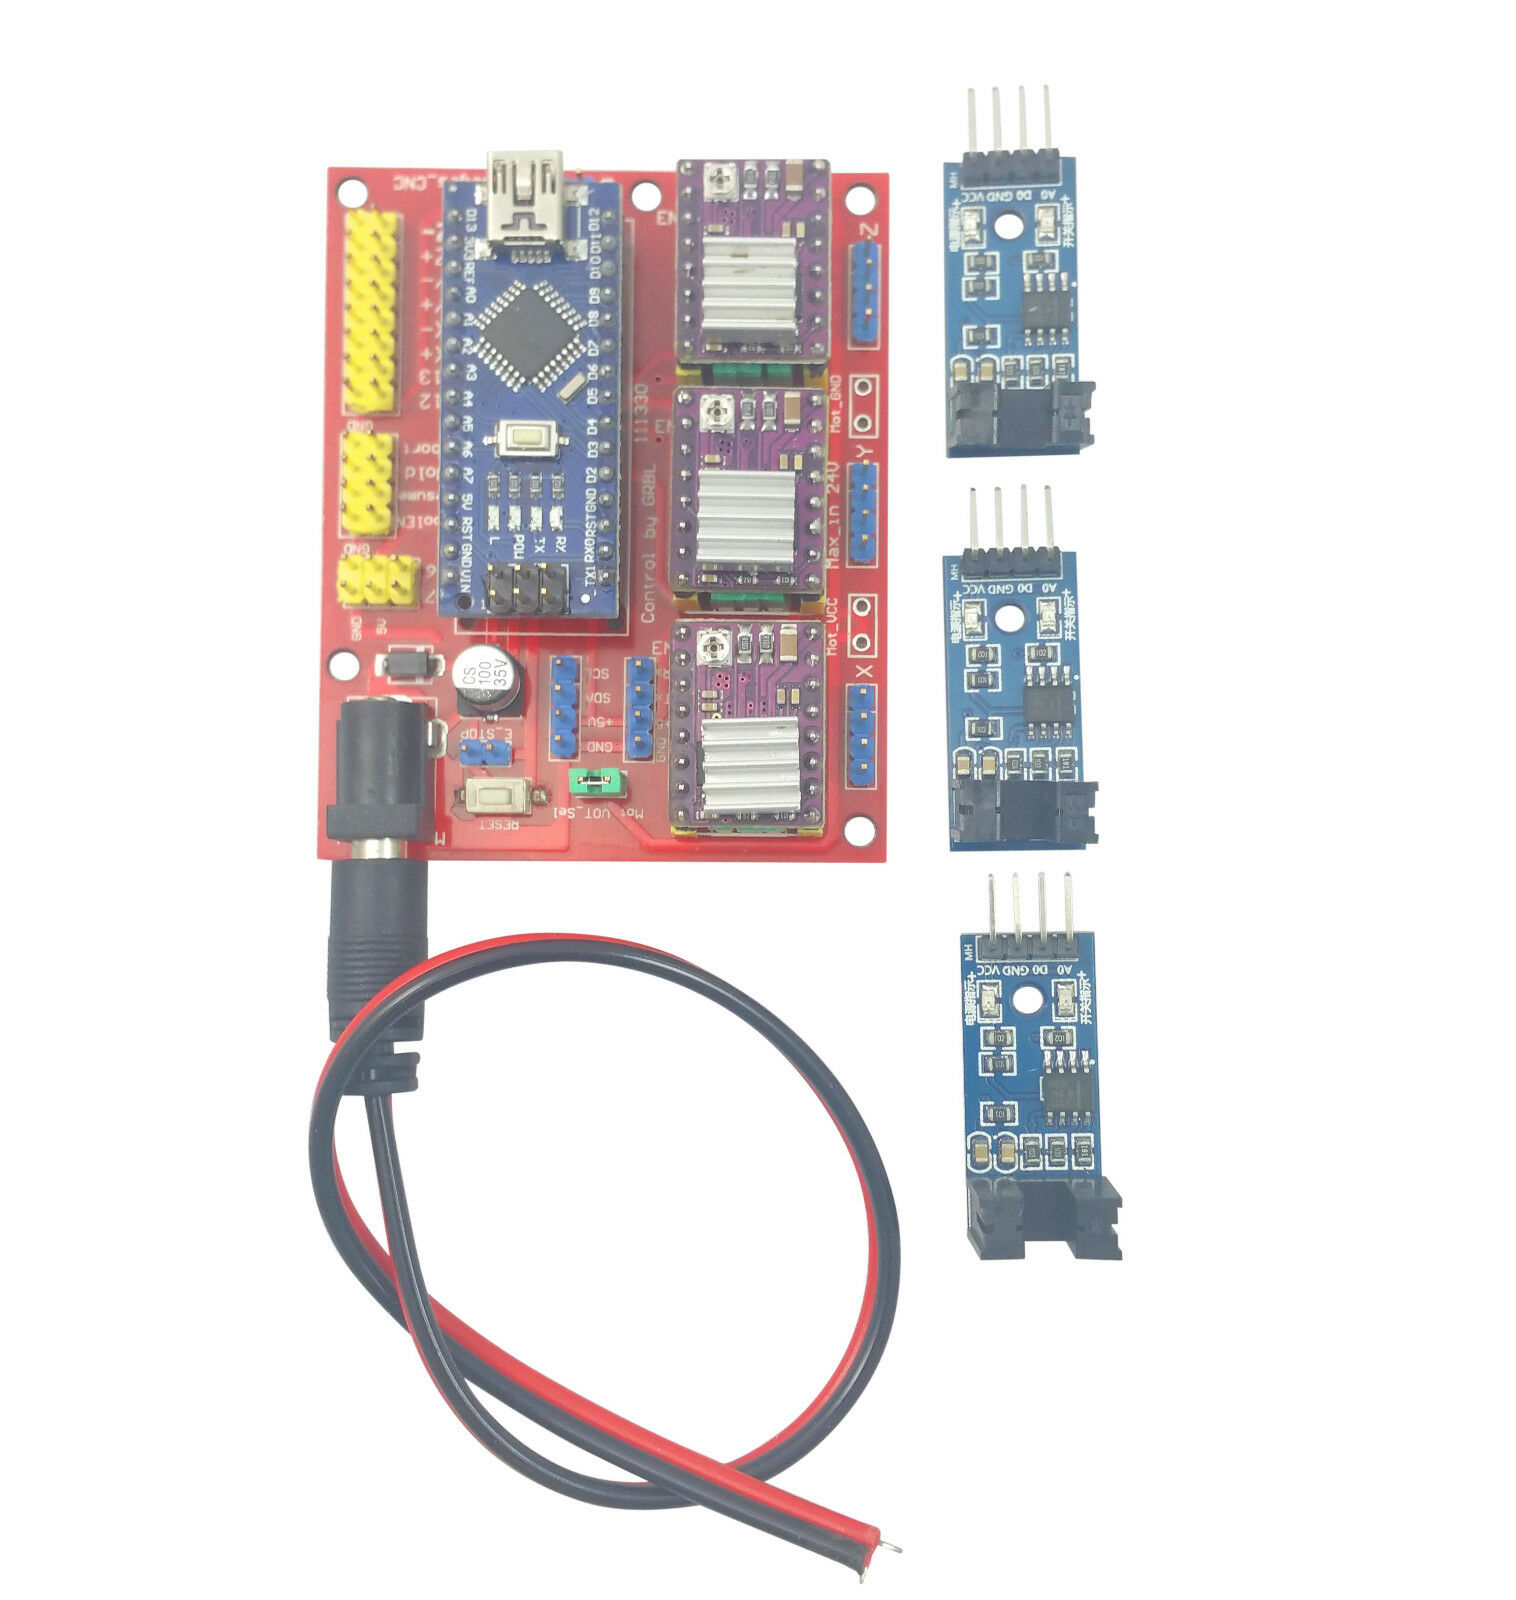 Details about Arduino Nano CNC Shield DRV8825 Board Package Kit w/ 3x  Optical Limit Switch